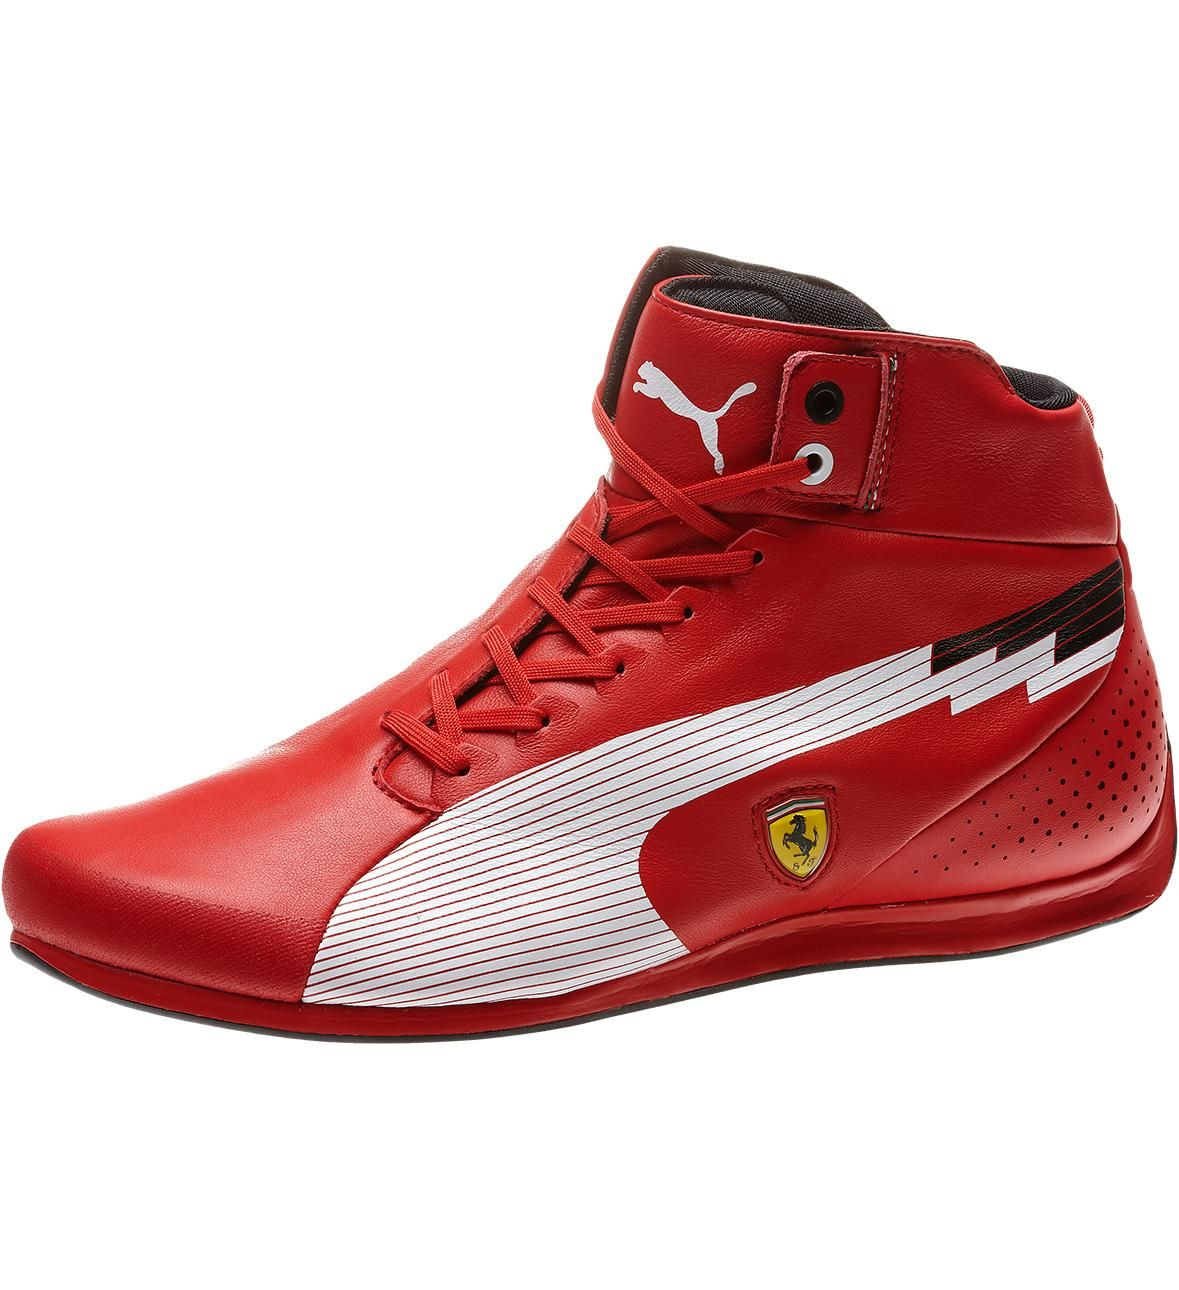 0bebe22e9d0e PUMA Ferrari evoSPEED Mid Shoes.  130.00